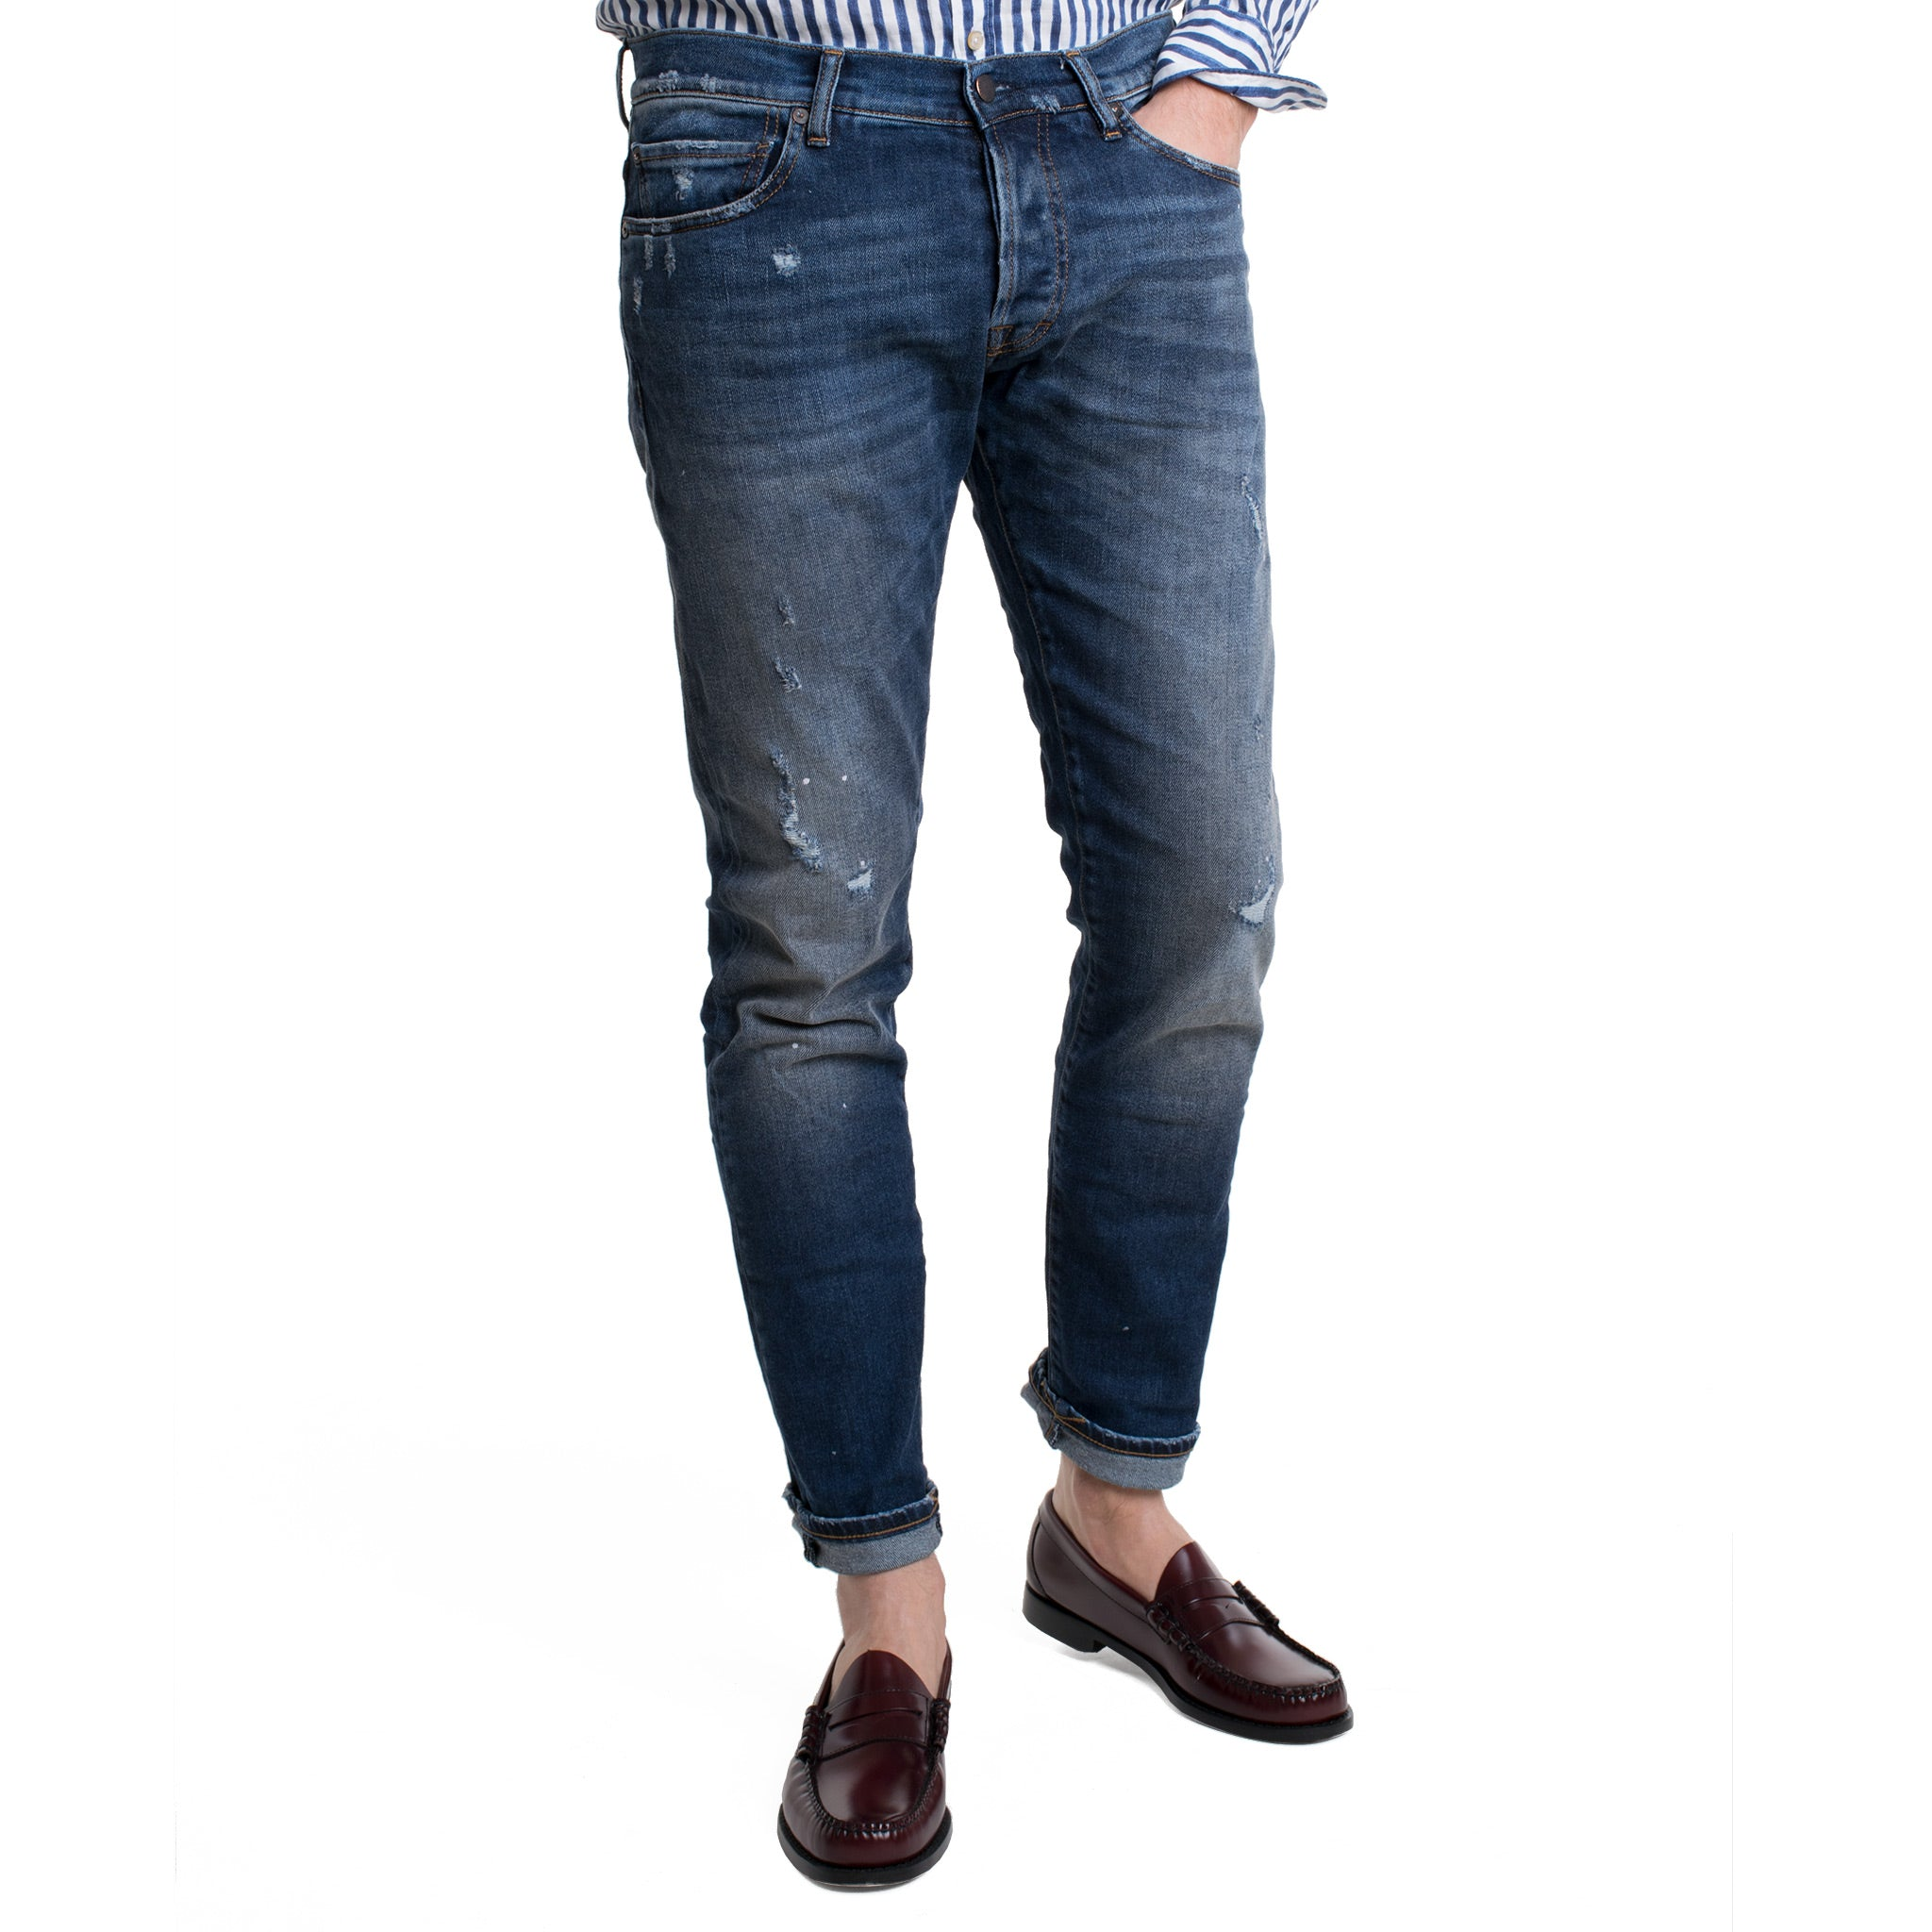 TheNim Jeans Slim fit im Destroyed Look